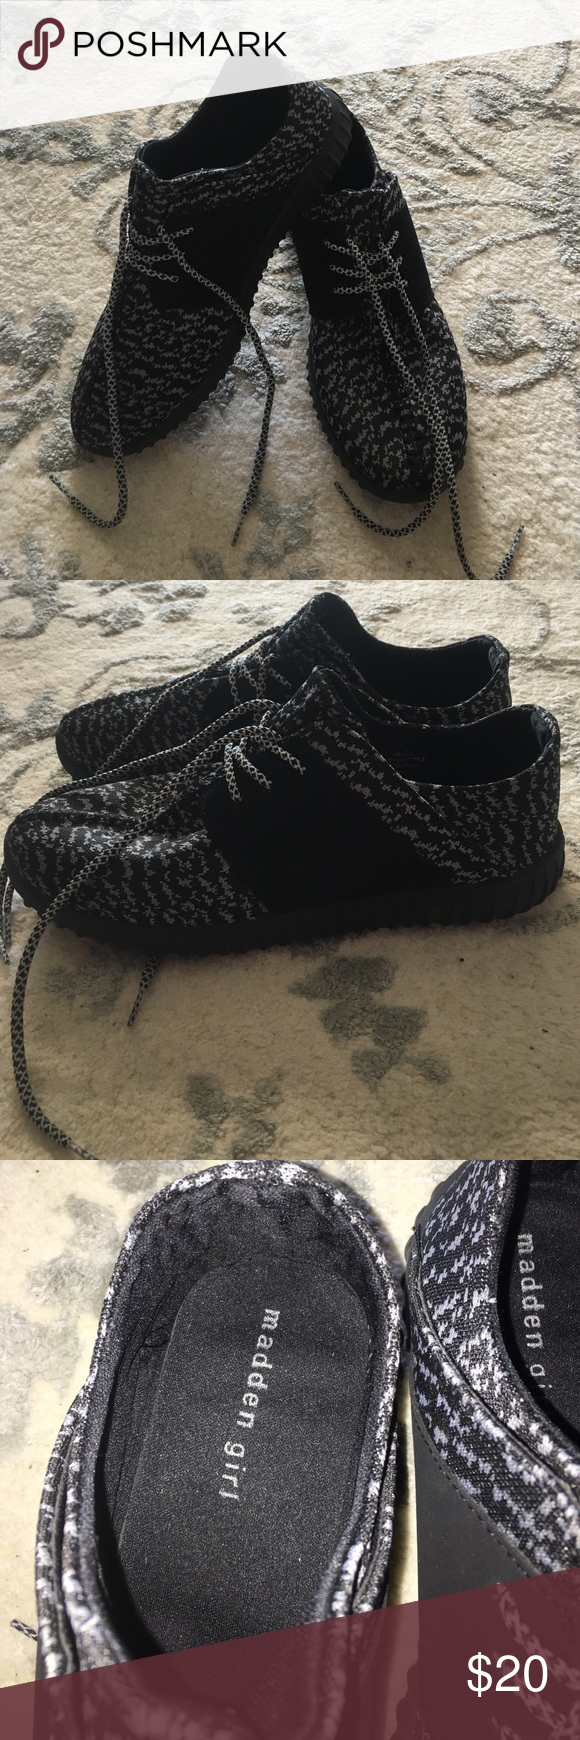 a79d044f4 Black Look alike Yeezys!! Black look alike Yeezy boost!! Worn once ...